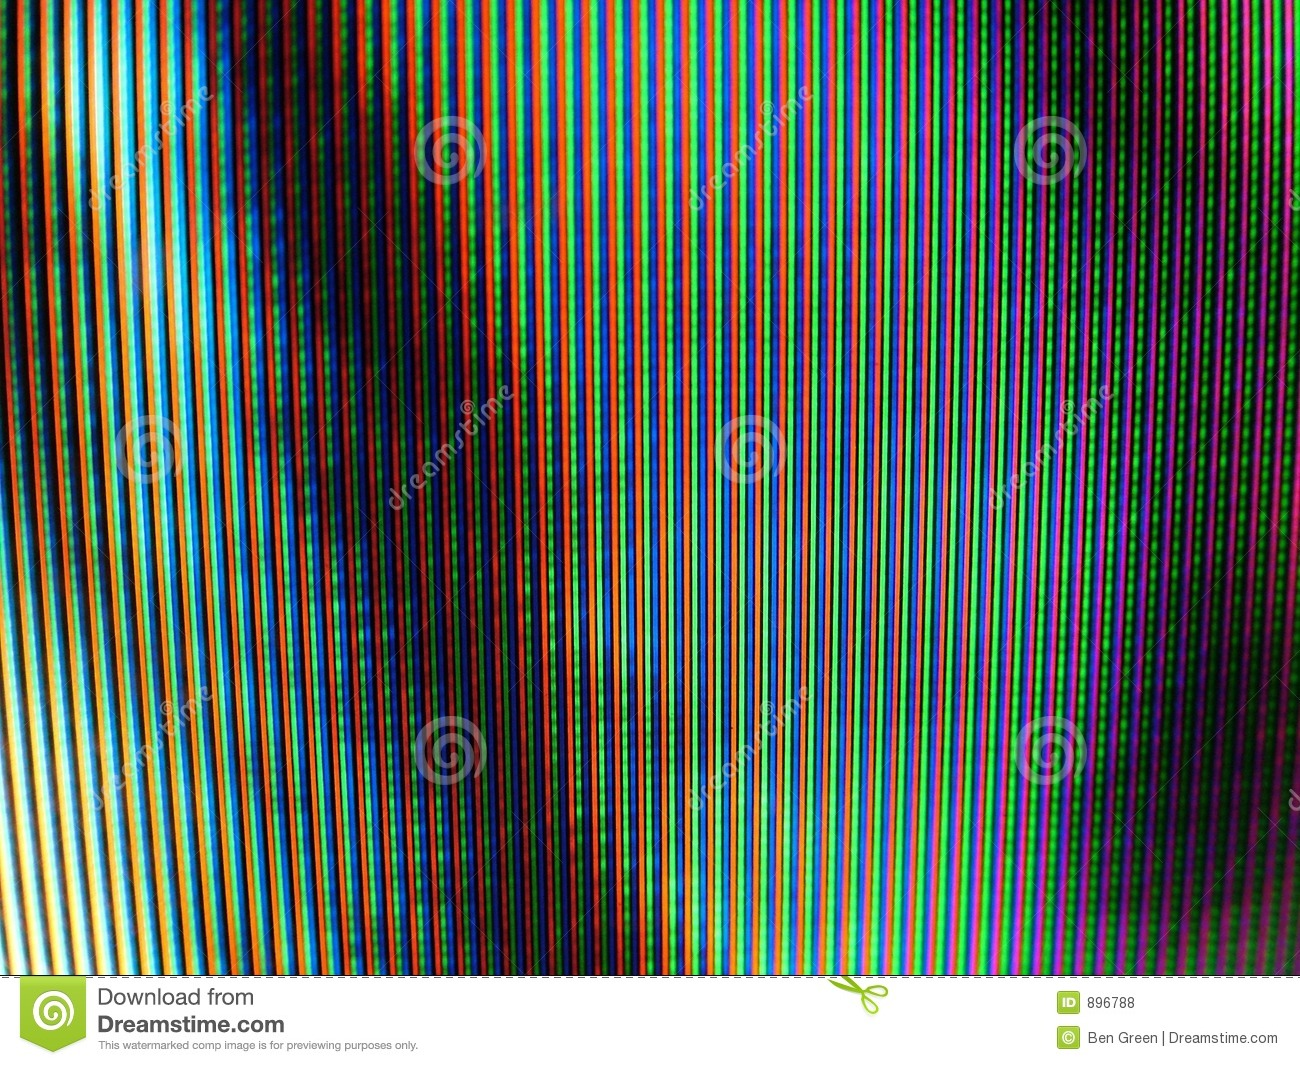 Abstractovision